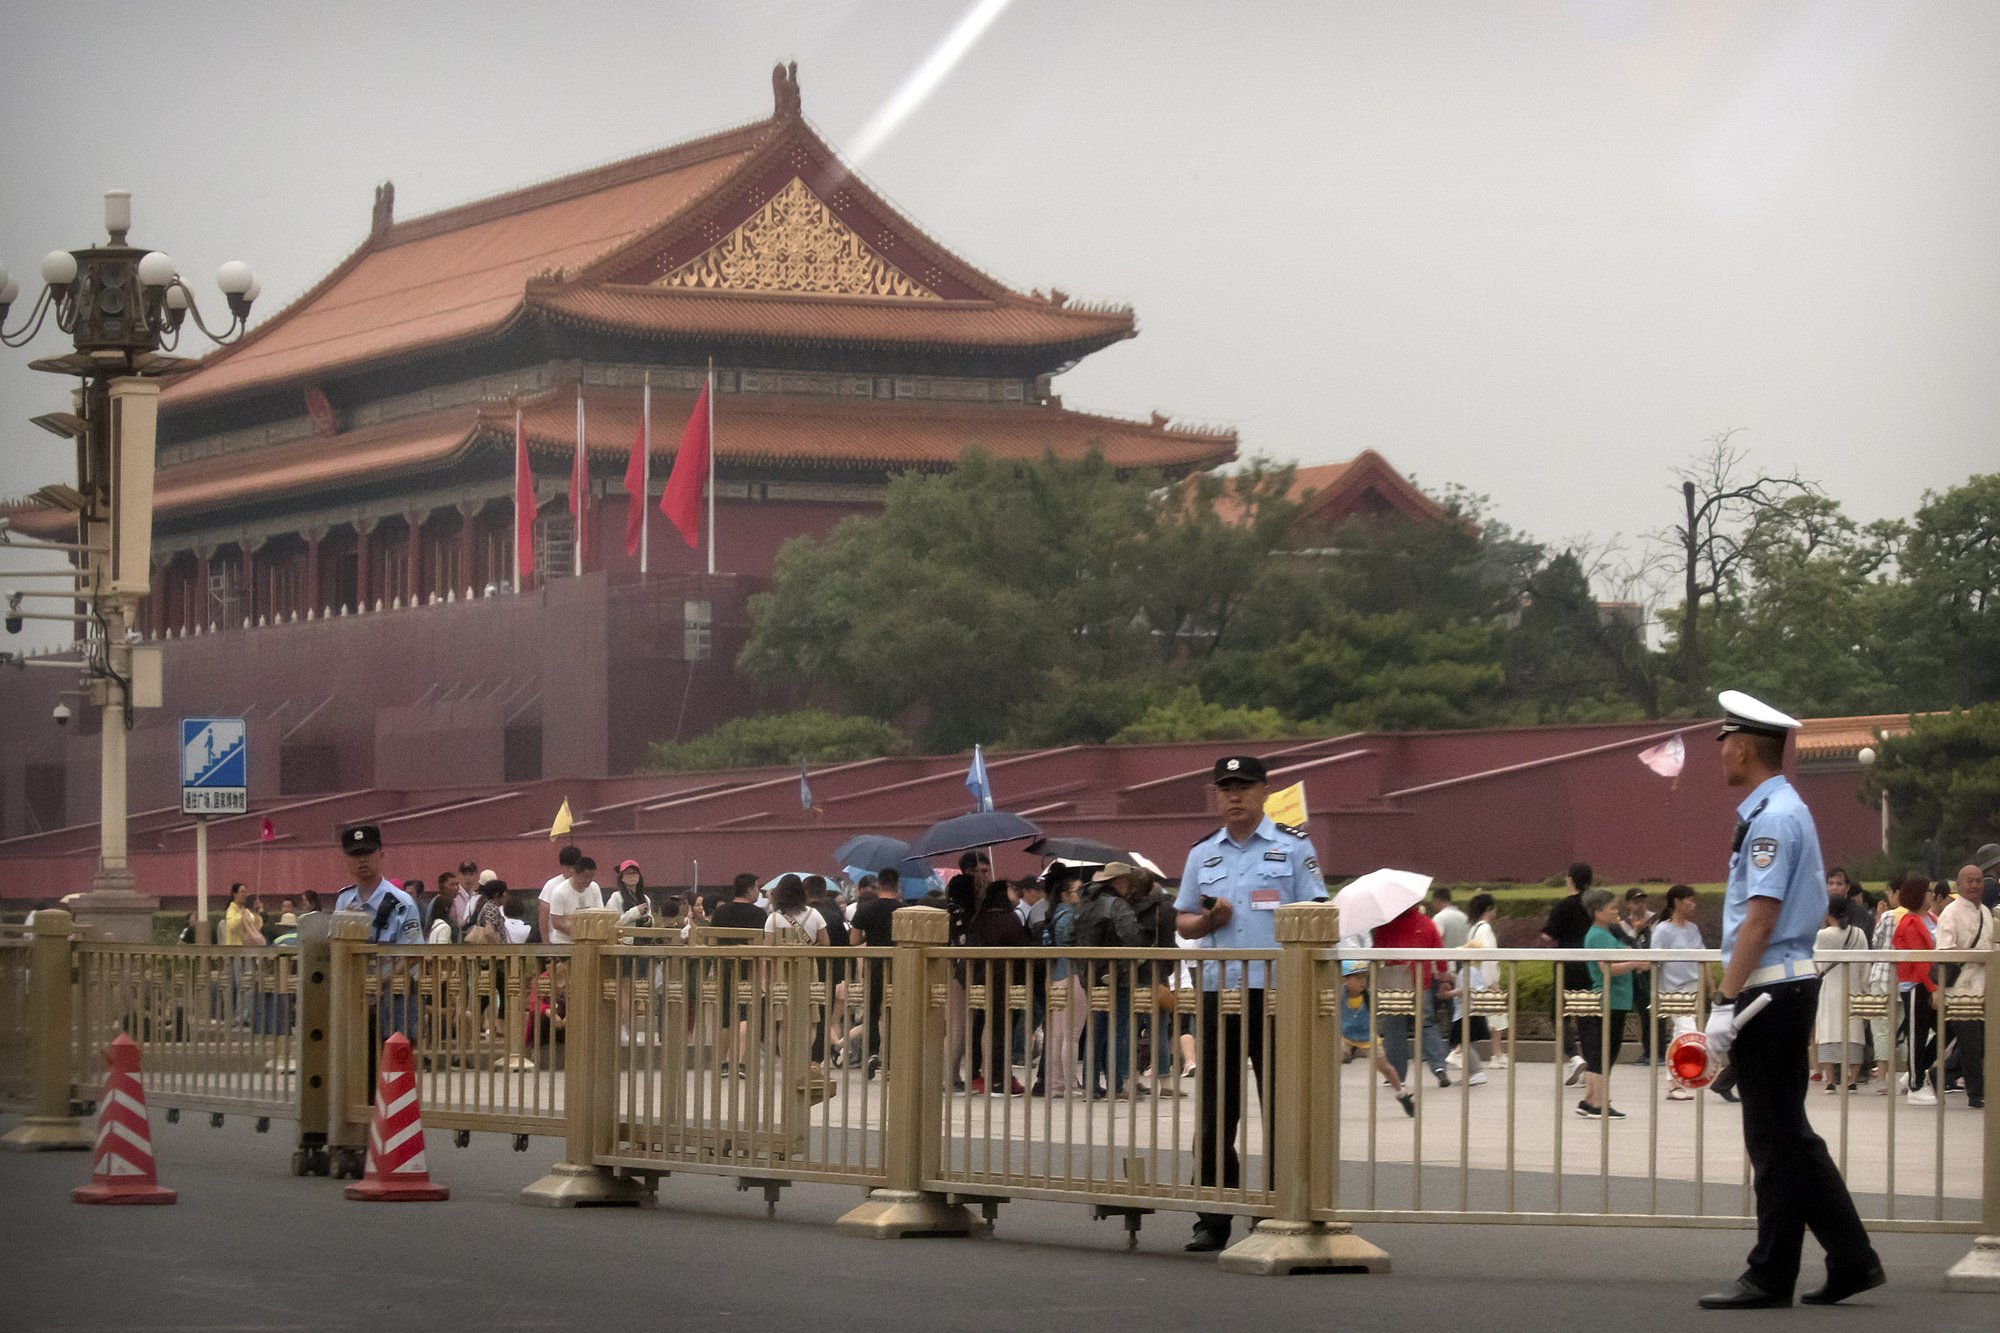 Security officials stand guard in front of Tiananmen Gate next to Tiananmen Square in Beijing on June 4, 2019. (Mark Schiefelbein/AP)